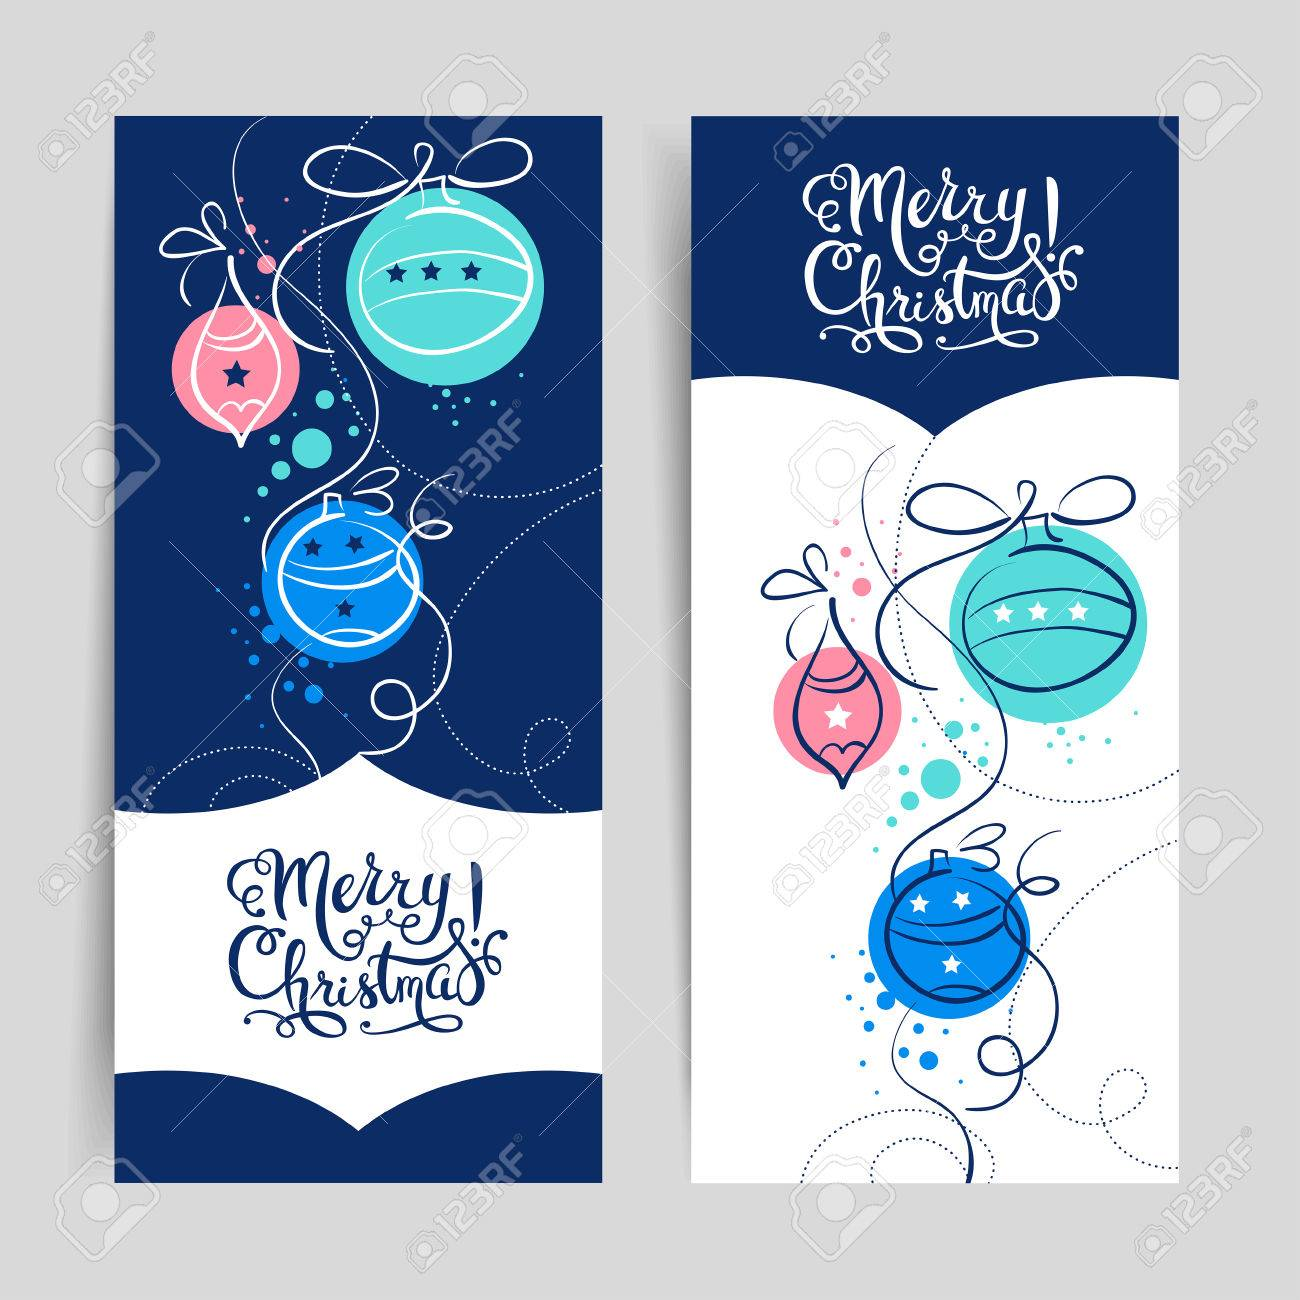 Merry Christmas Vintage Banners Happy New Year Cards Vector